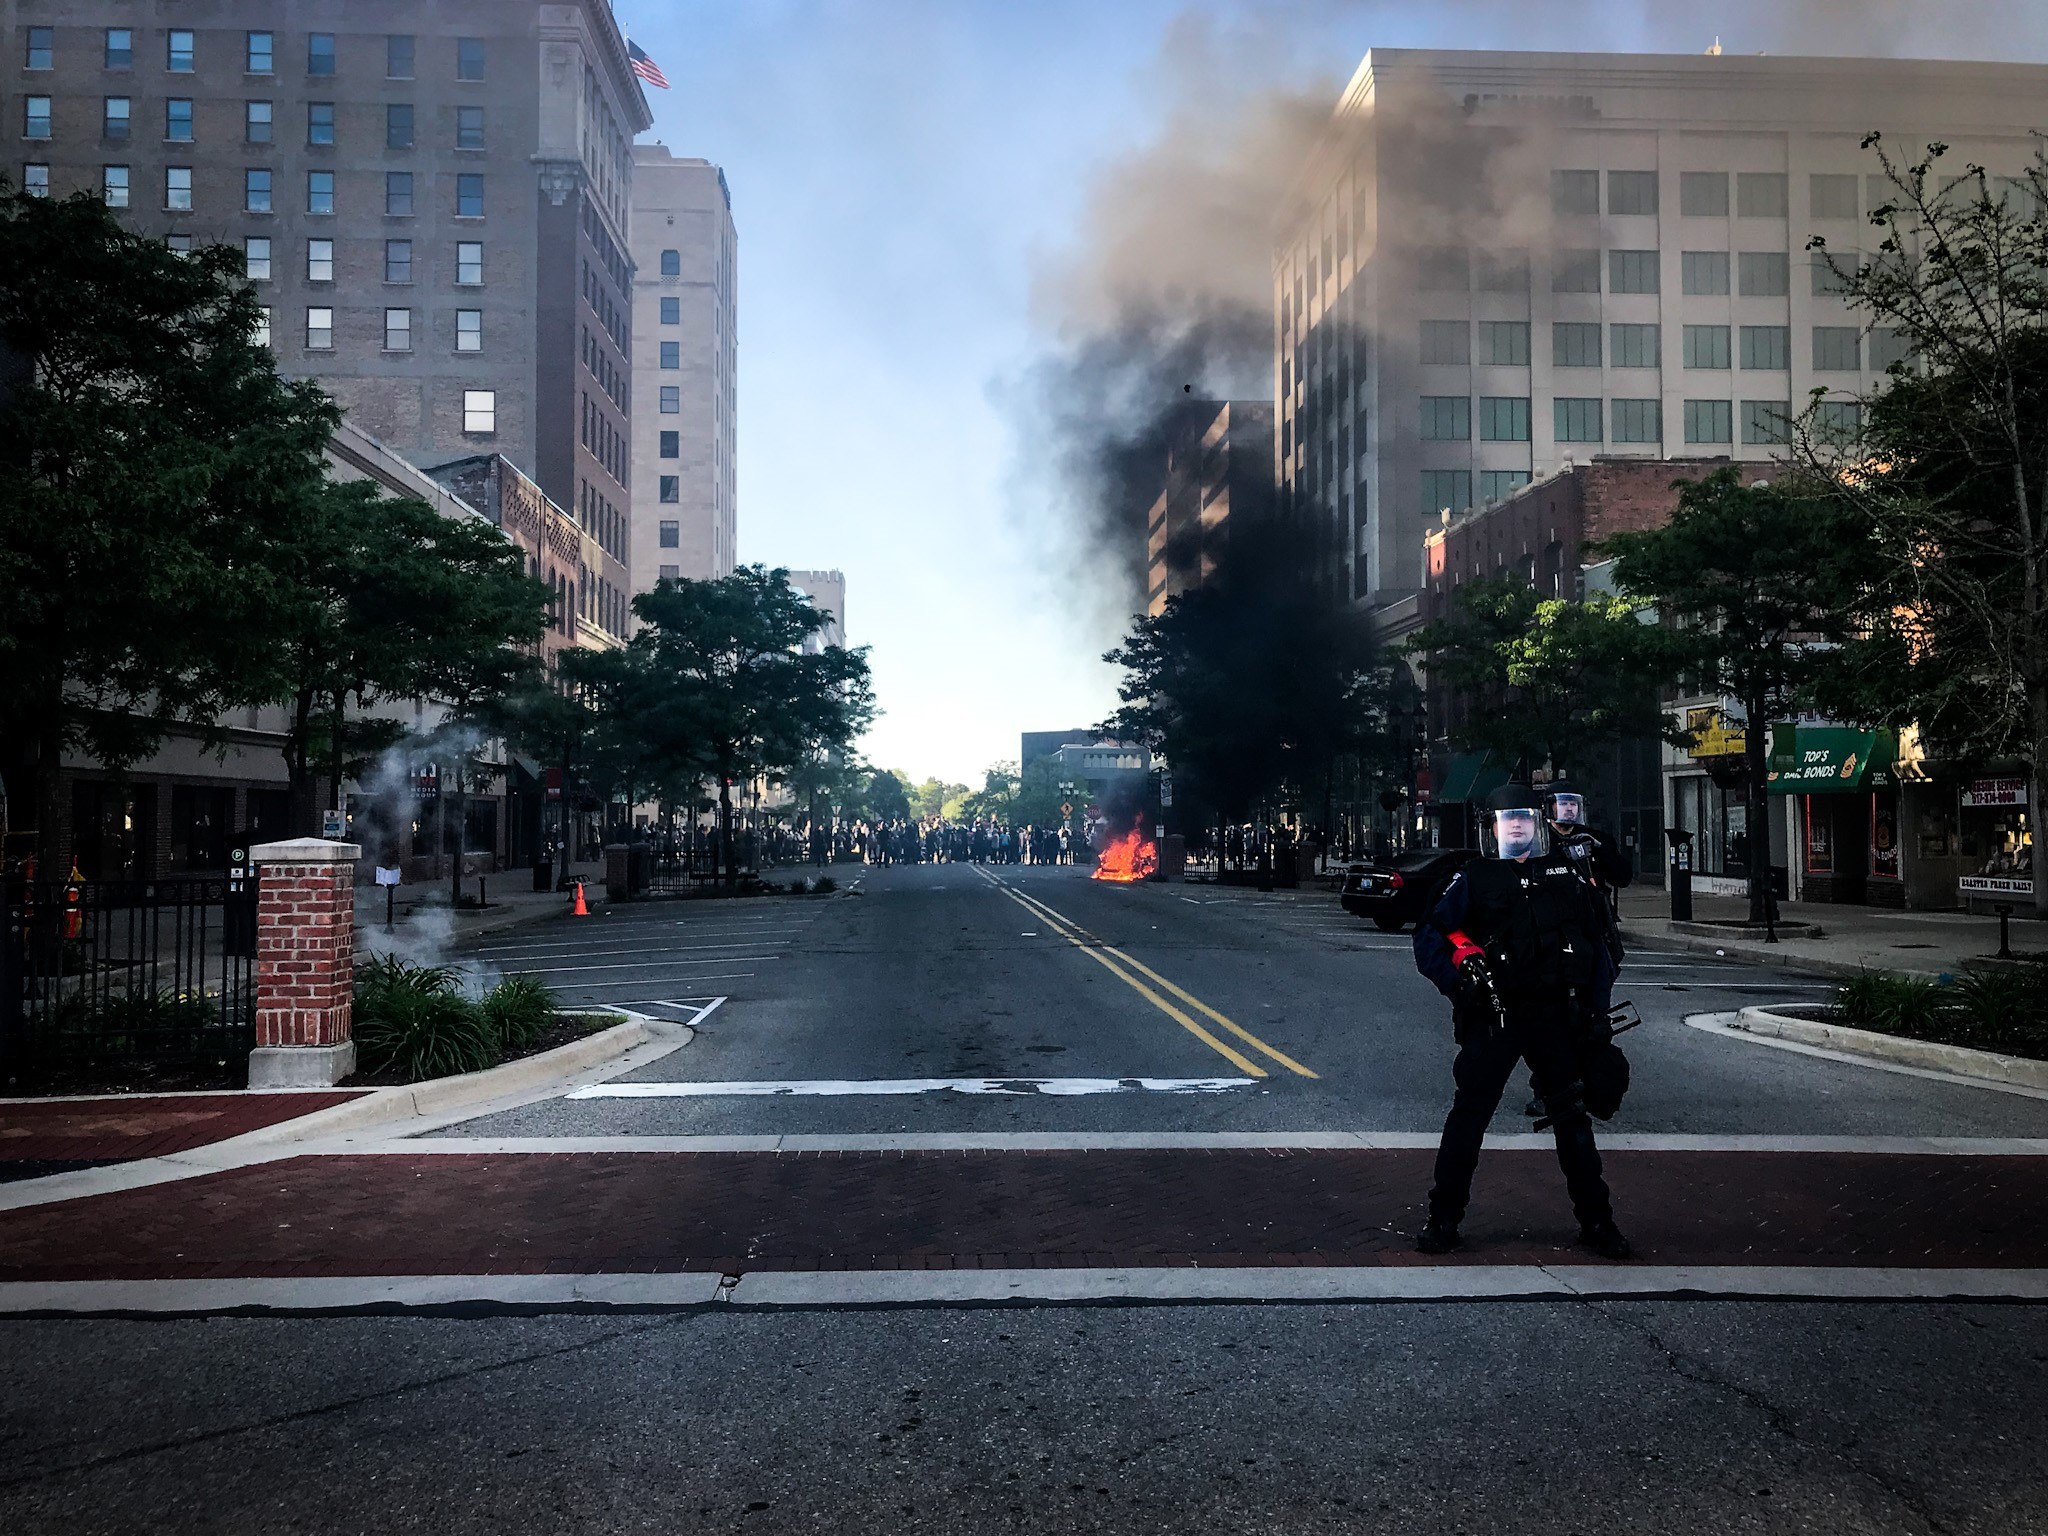 A car was completely burned on a street in Lansing after a peaceful protest turned violent and police used teargas to disperse the crowd on Sunday, May 31, 2020. (WWMT/Mikenzie Frost)